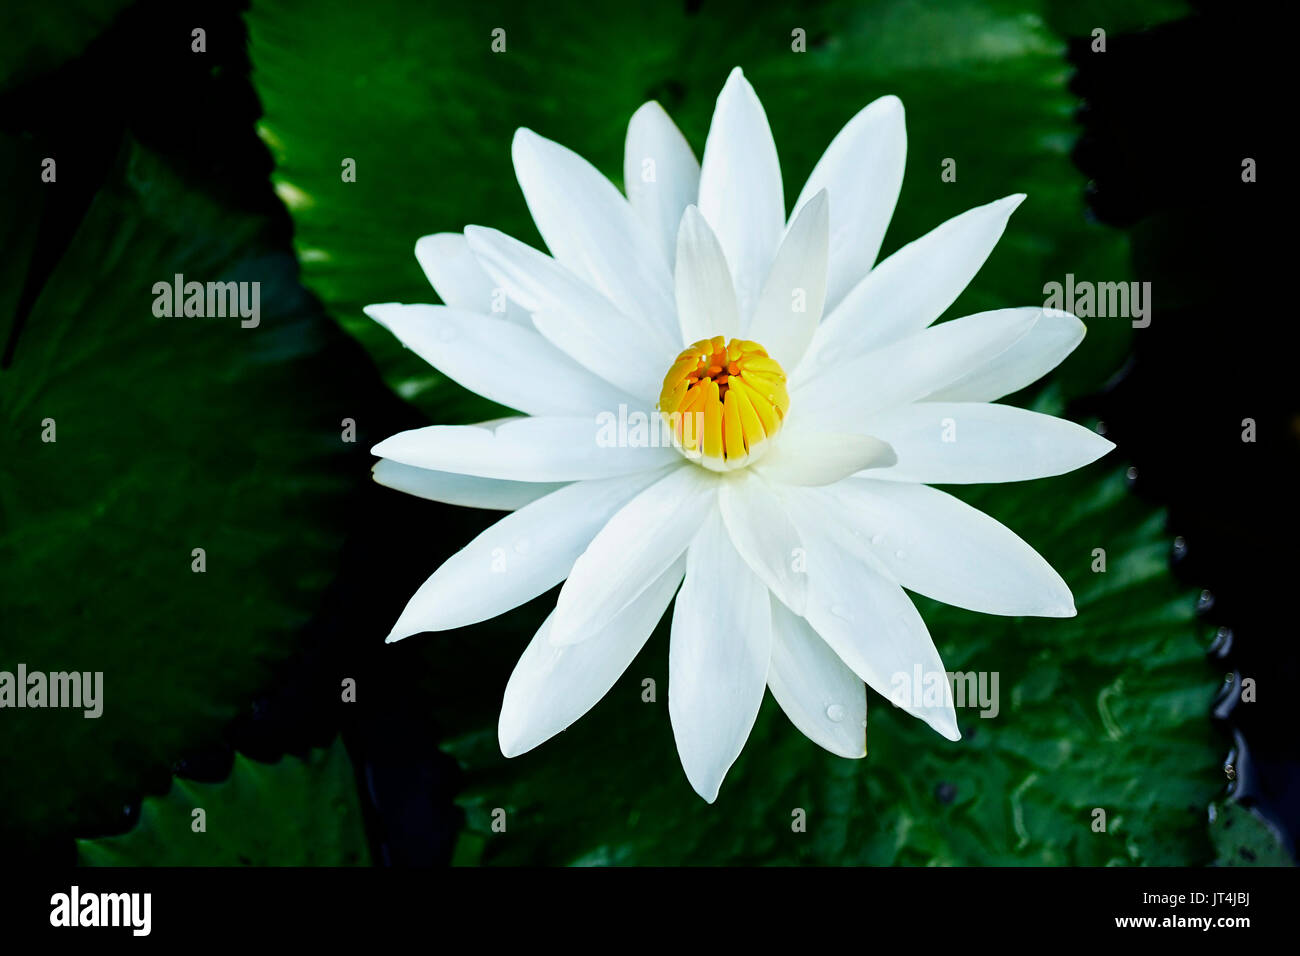 White lotus flower black background stock photos white lotus close up of one open lotus flower with white petals and closed yellow core in izmirmasajfo